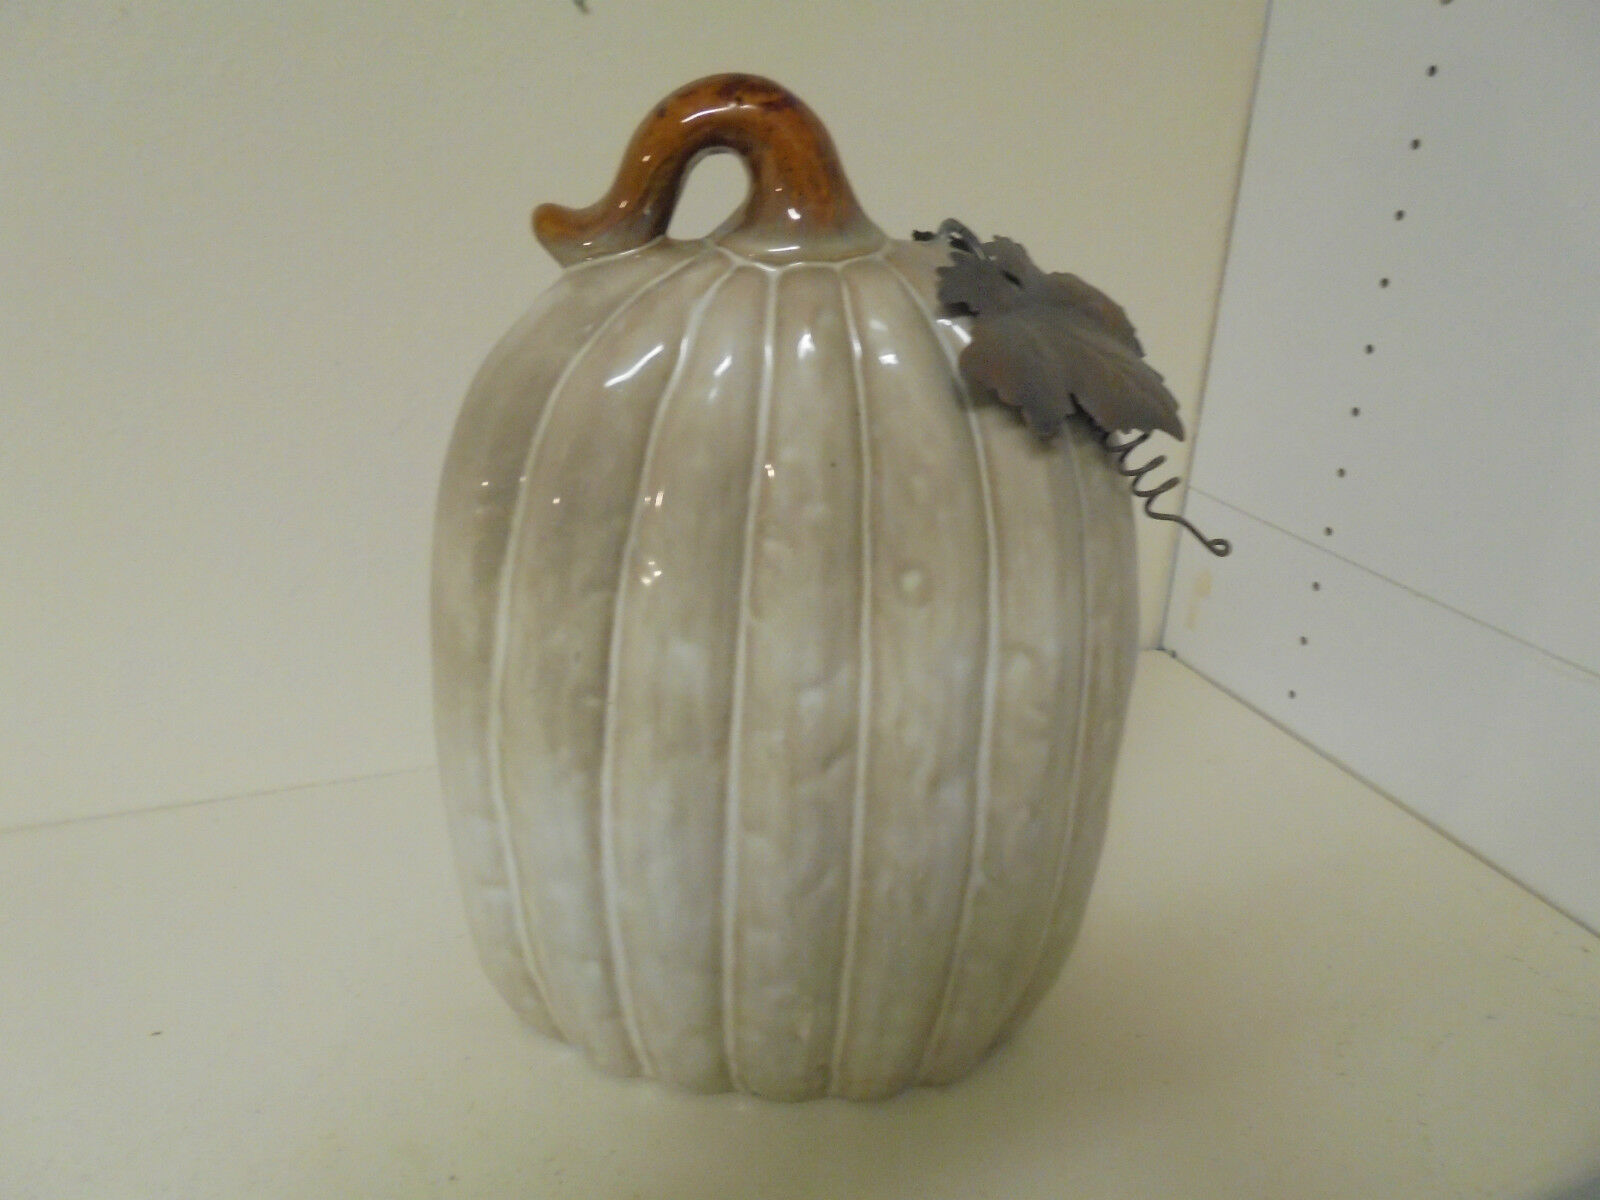 Tall and Thin Large Ceramic Cream Pumpkin with Metal Fig Leaves 14x7x4